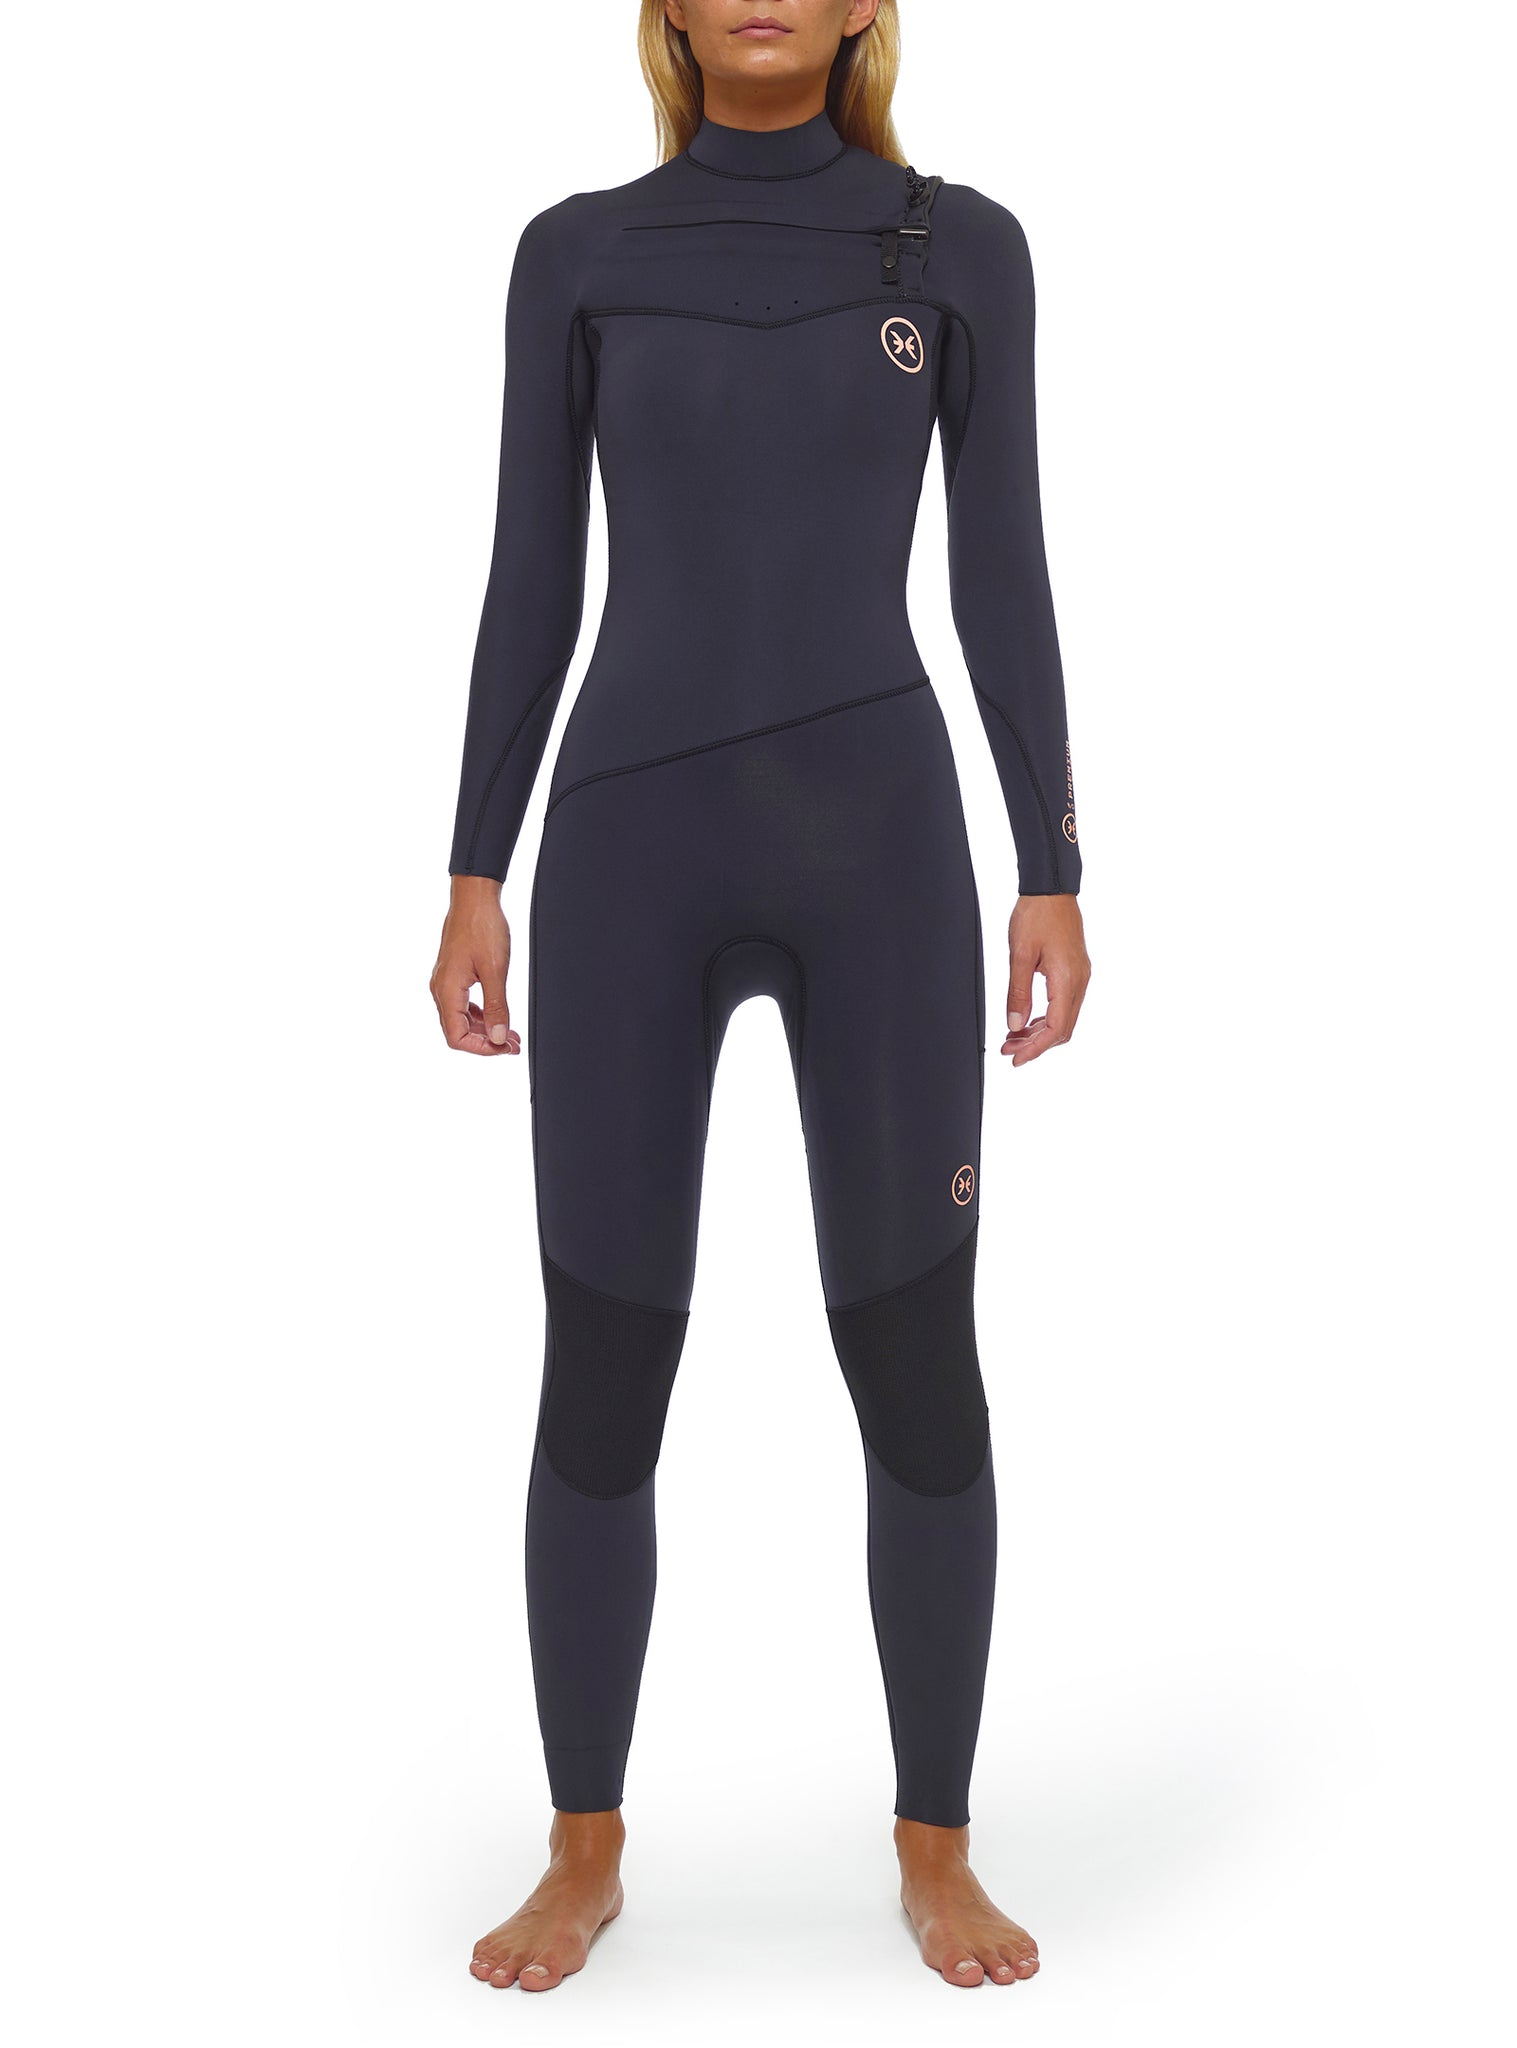 Wetsuit Woman Premium 4/3 Chest Zip Dark Blue